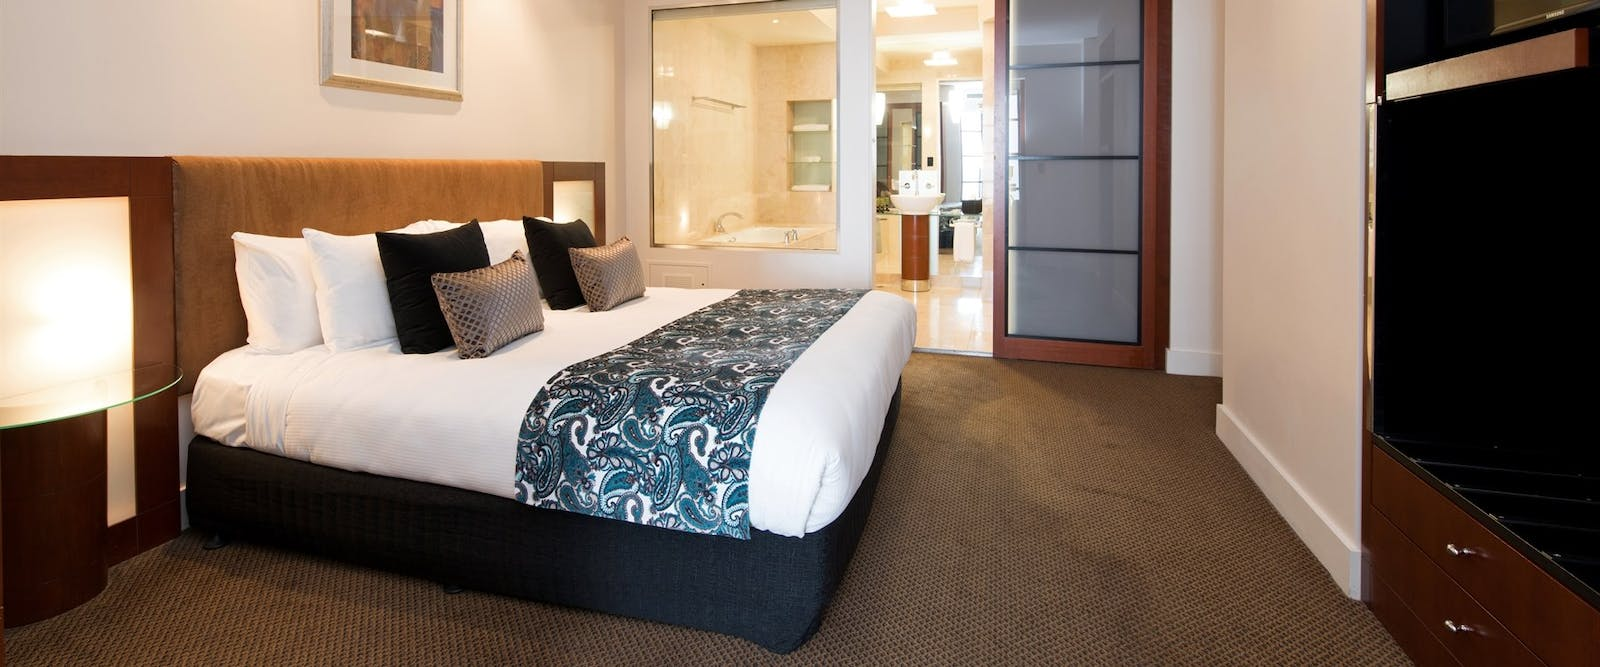 Deluxe spa suite, Peppers Waymouth Hotel, Adelaide